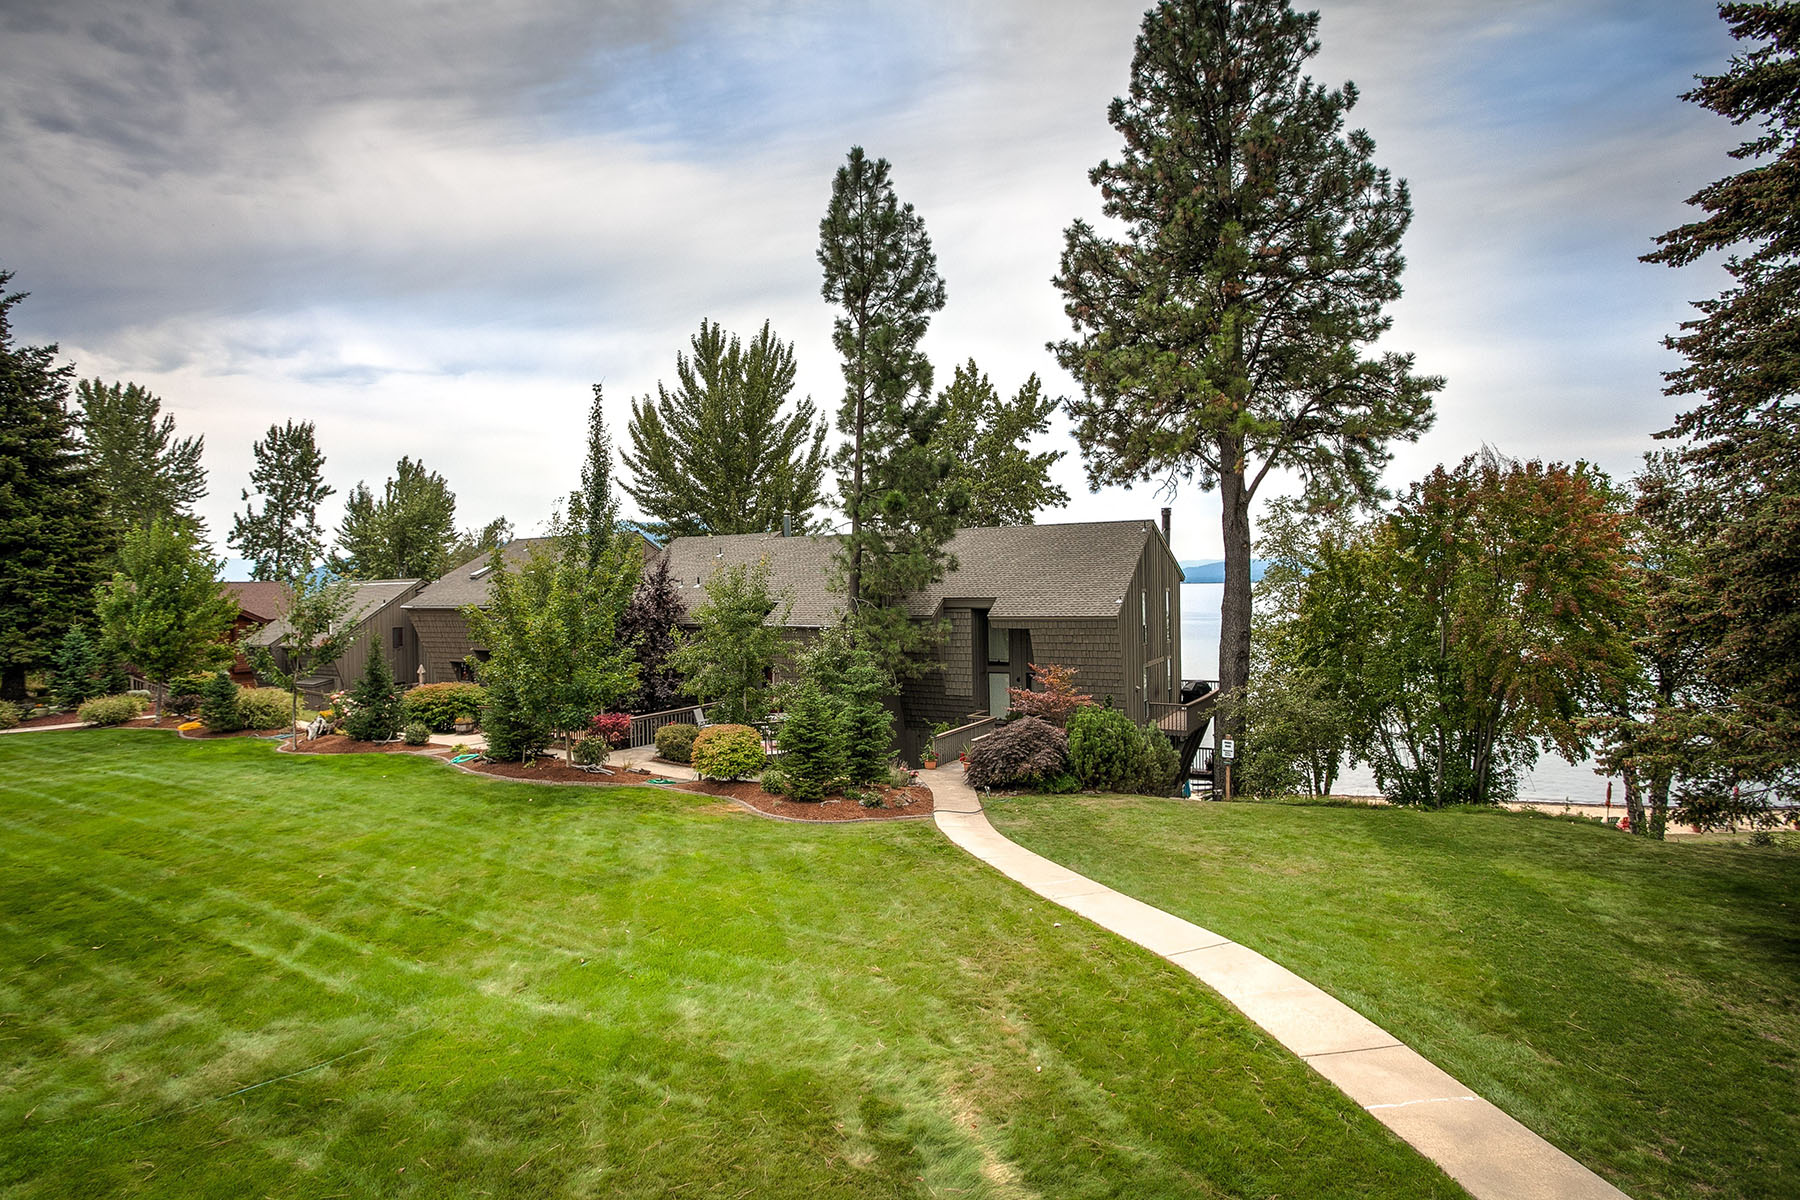 Villa per Vendita alle ore Whiskey Jack Townhome 562 Whiskey Jack Circle Unit #5 Sandpoint, Idaho, 83864 Stati Uniti